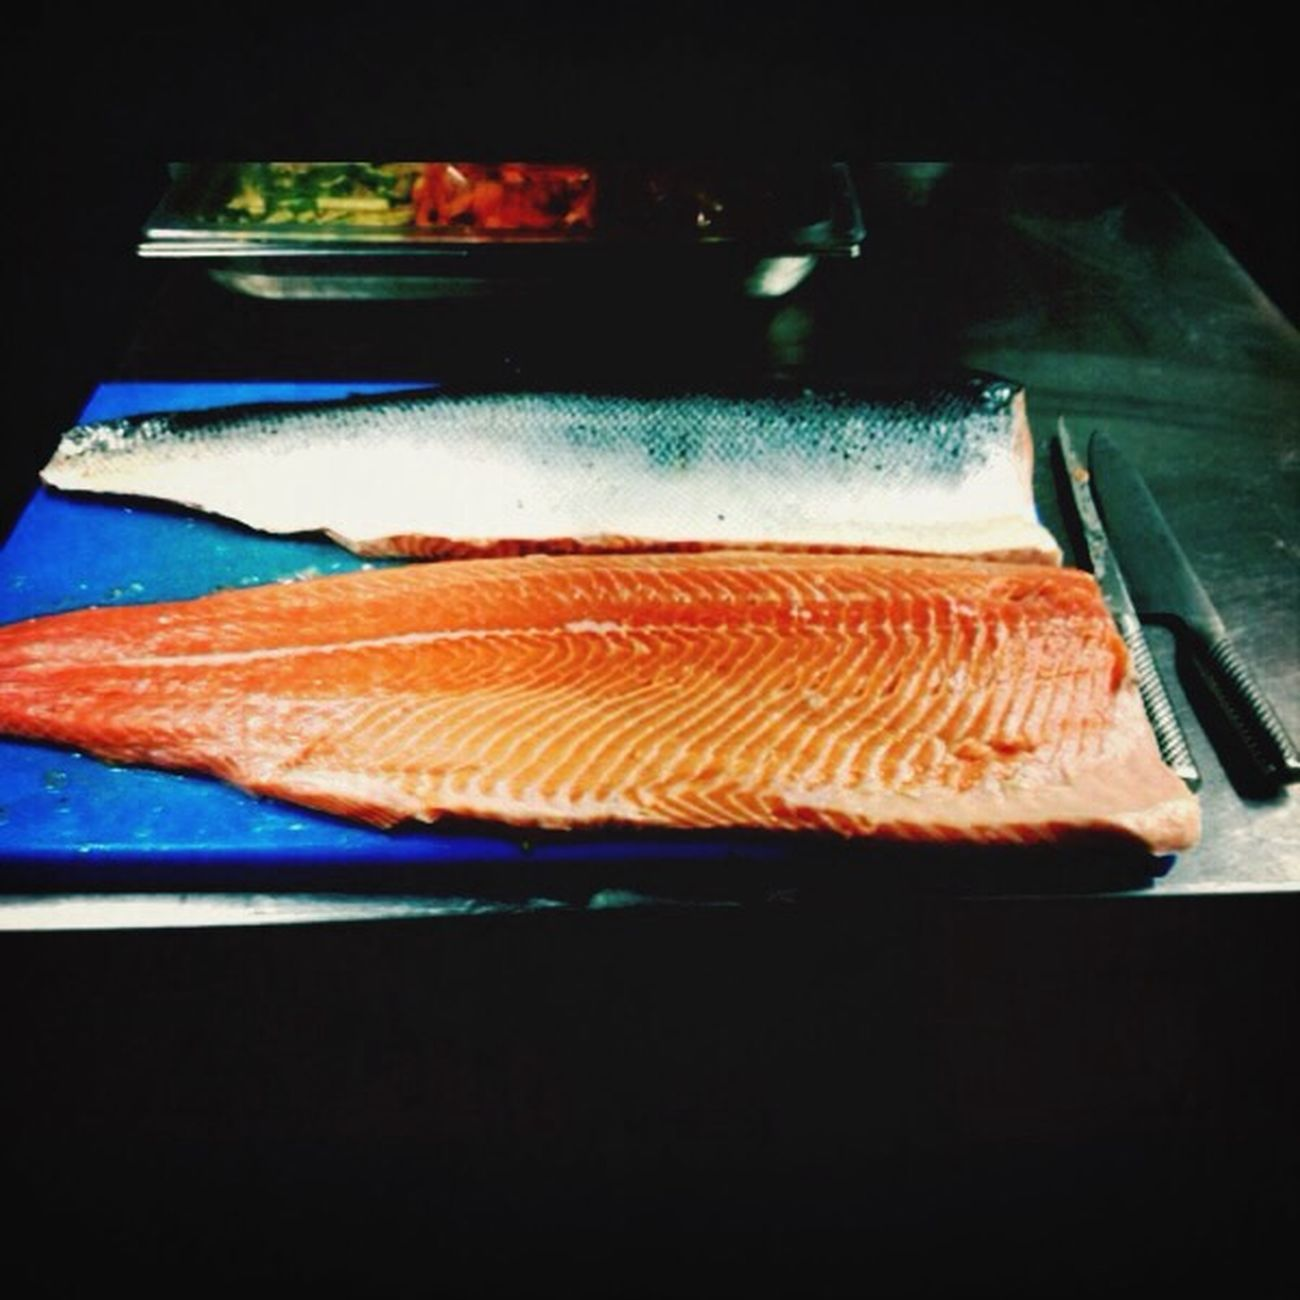 7kg of salmon ? Food Taking Photos Gastronomy First Eyeem Photo